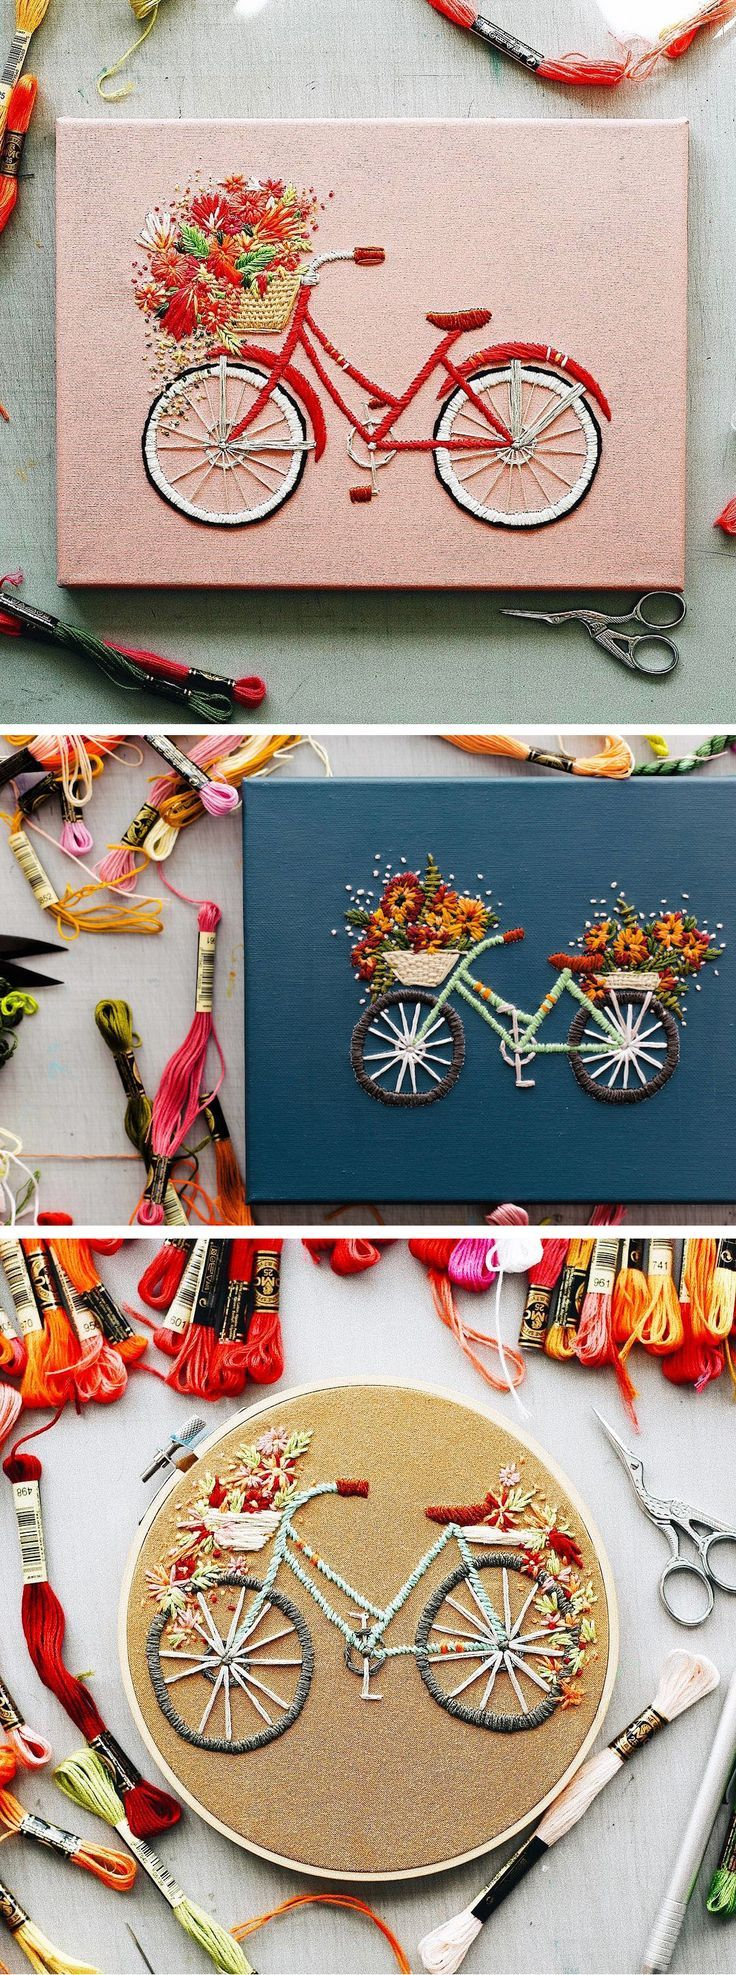 Charming Bicycle Embroidery Have Beautiful Blooms Spilling From Baskets